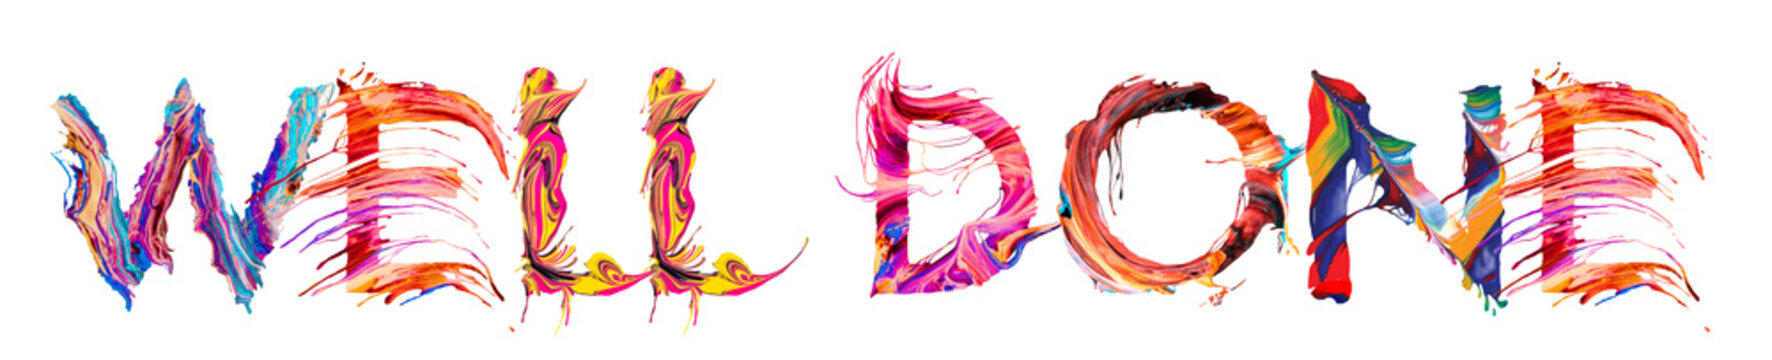 well done - colorful paint brush letter